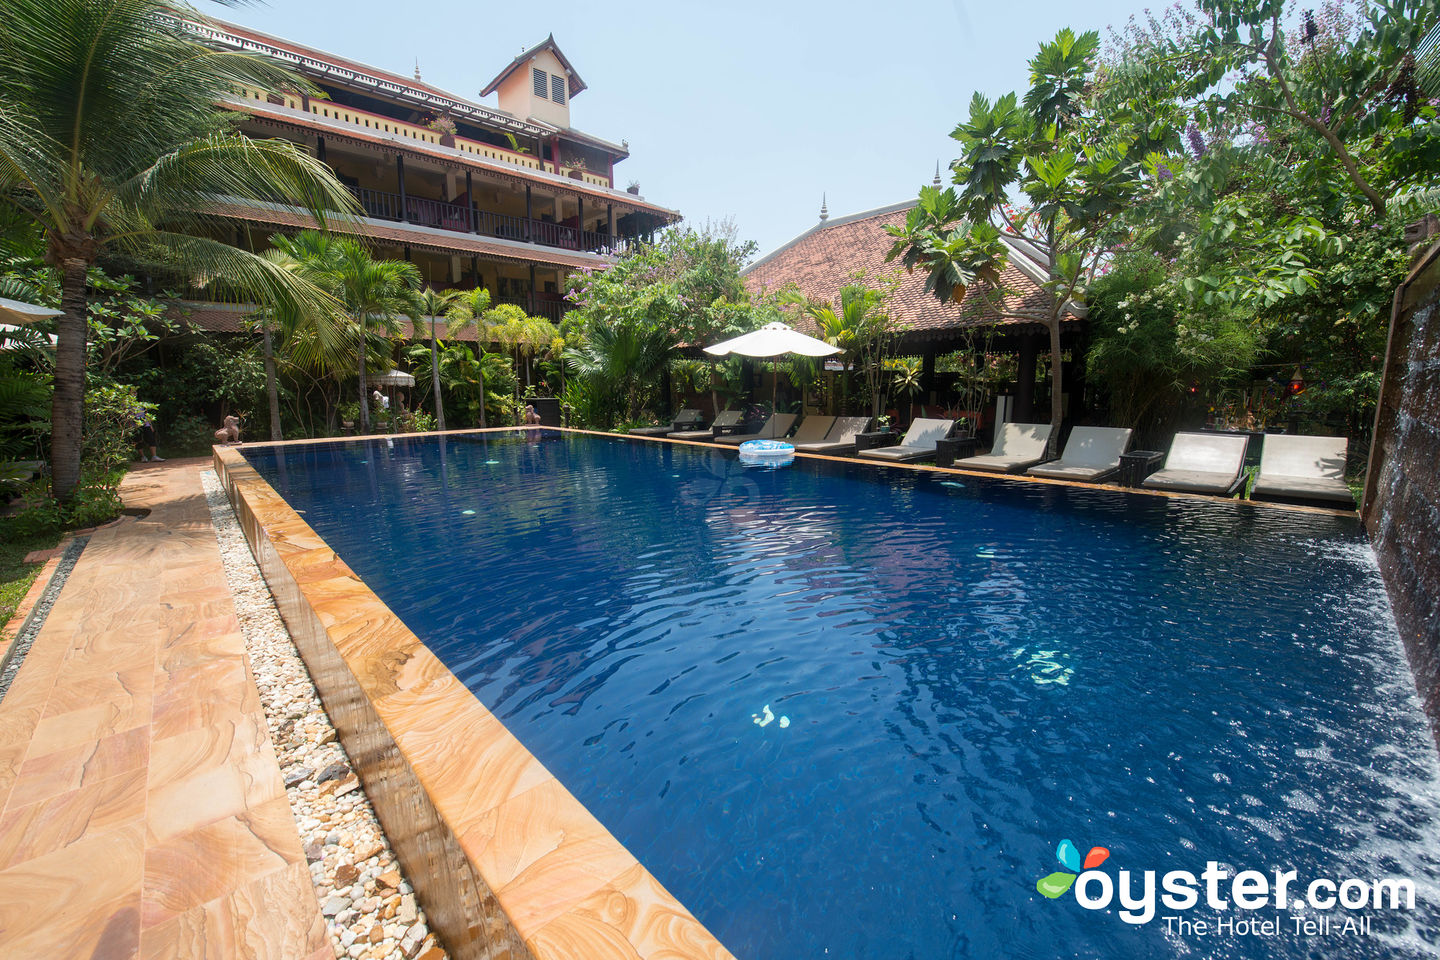 Siddharta Boutique Hotel Detailed Review, Photos & Rates (2019)   Oyster.com Hotel Reviews